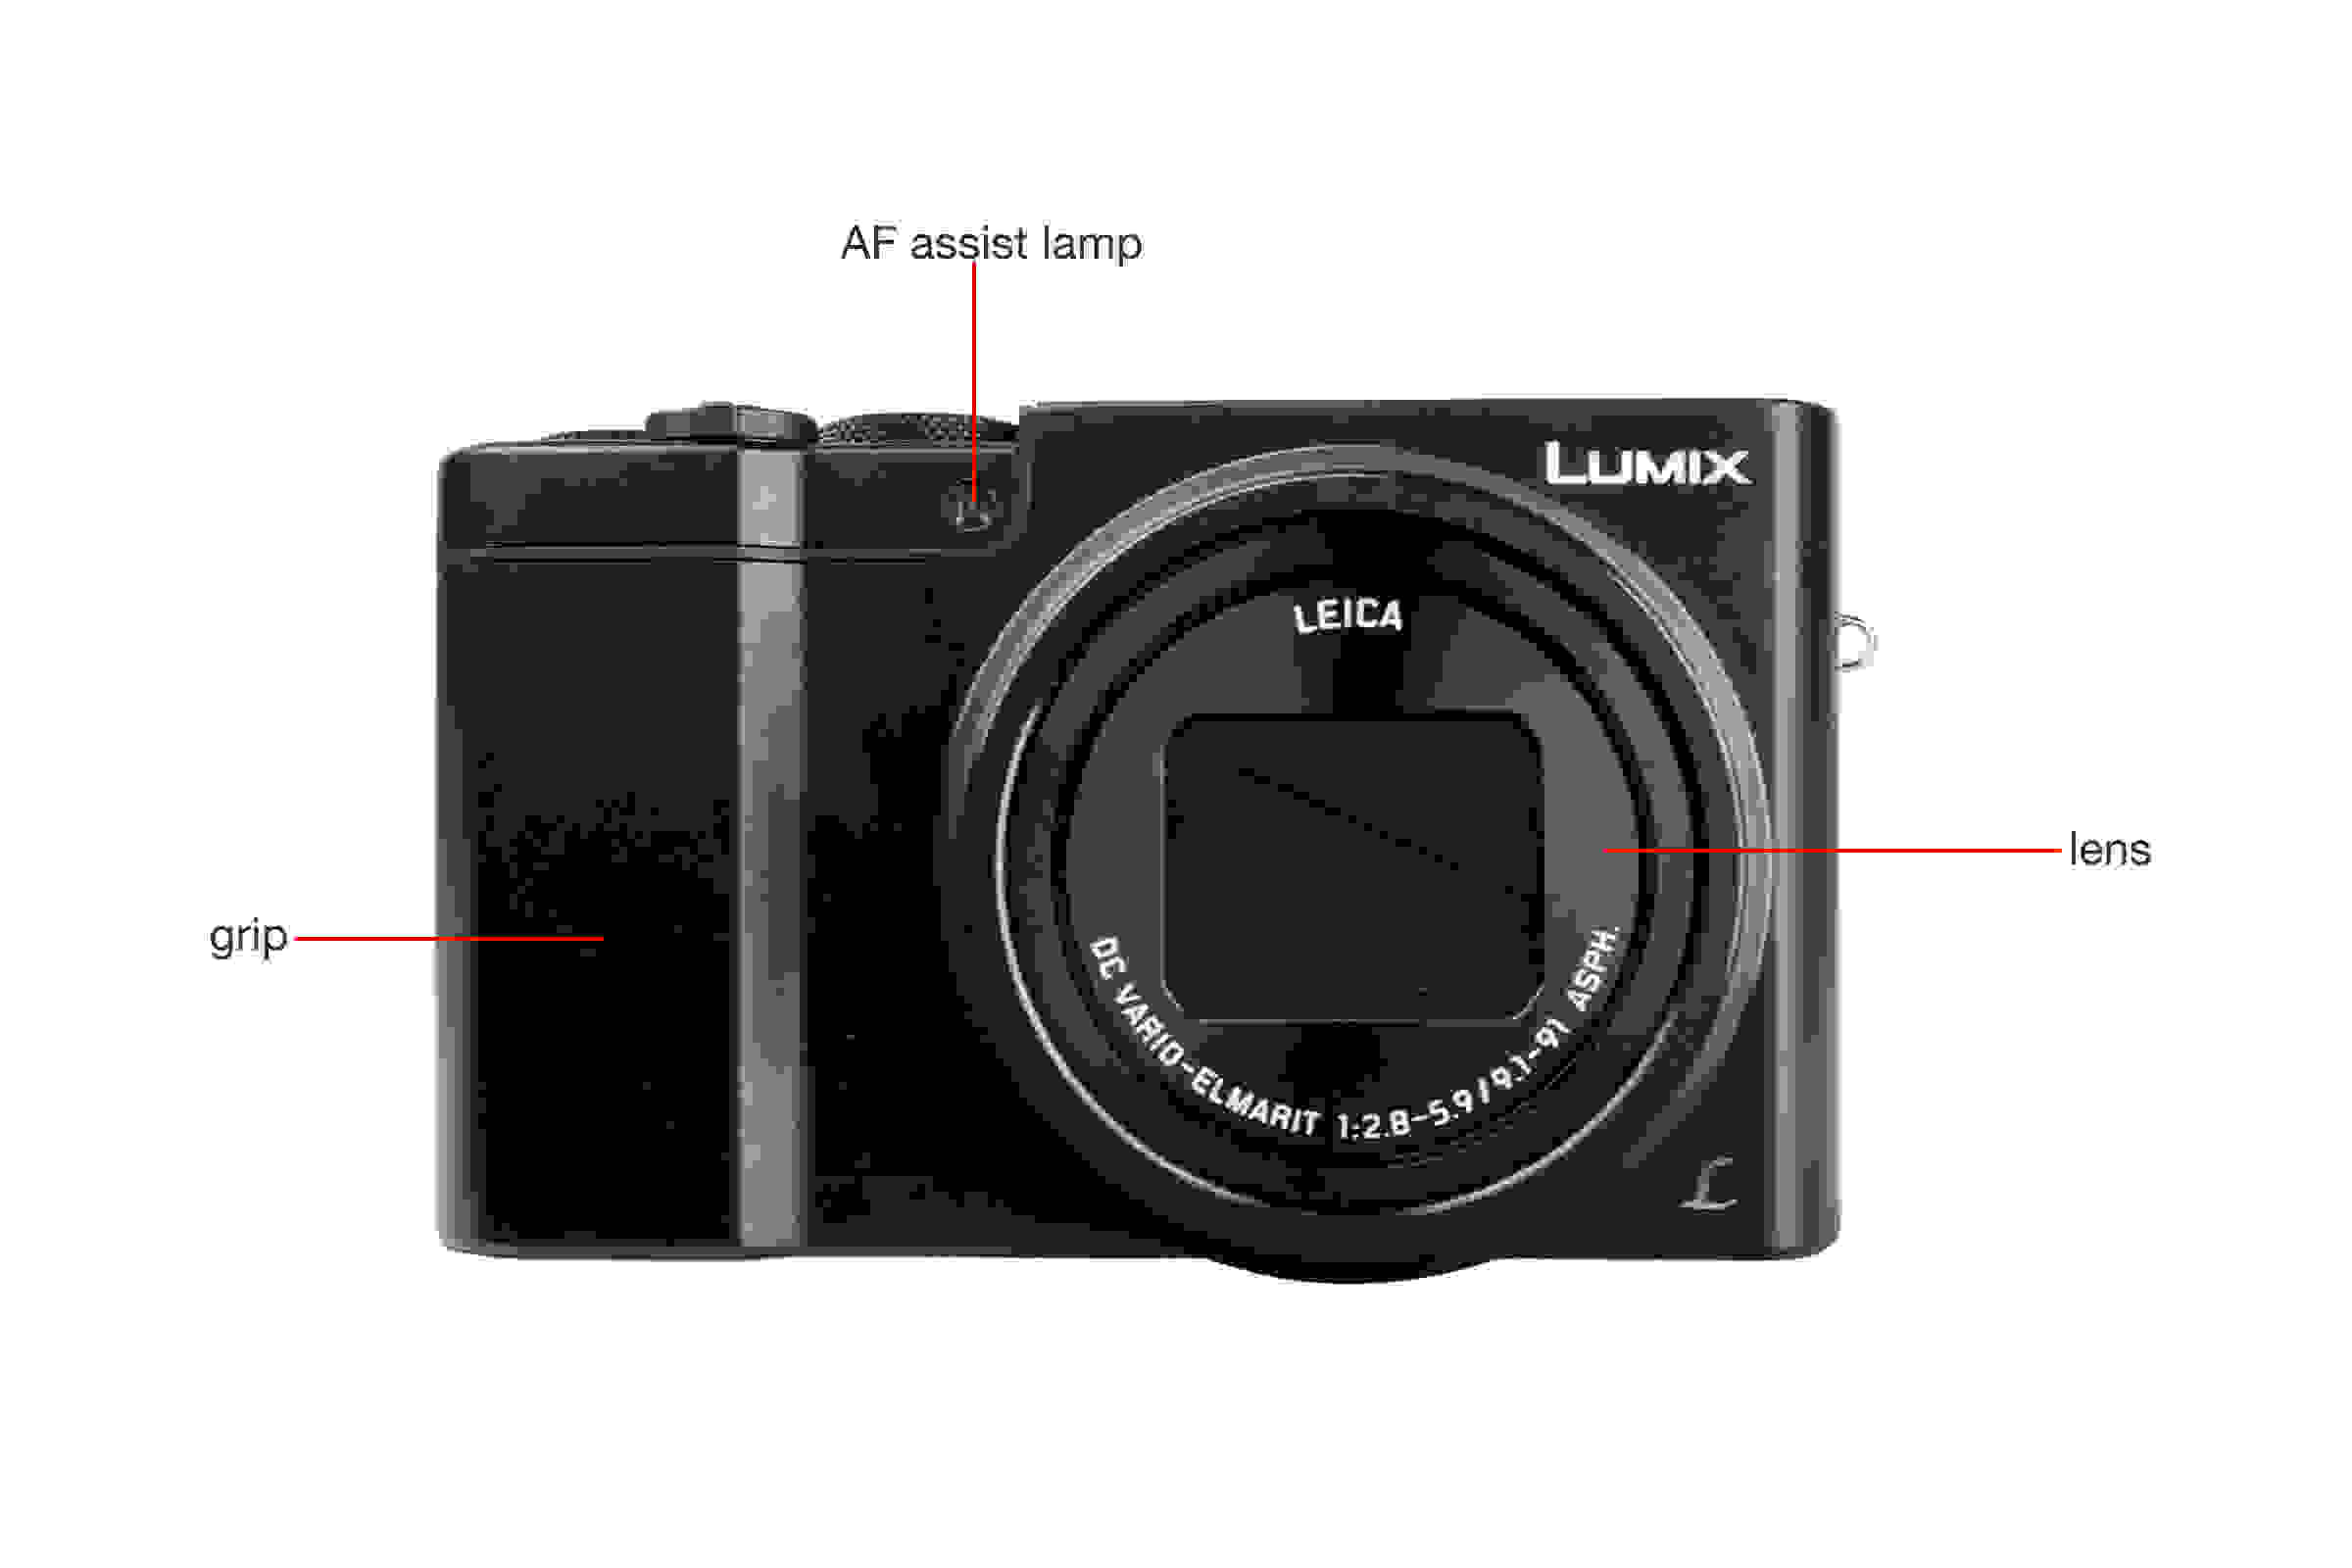 Front view of the Panasonic Lumix ZS100.